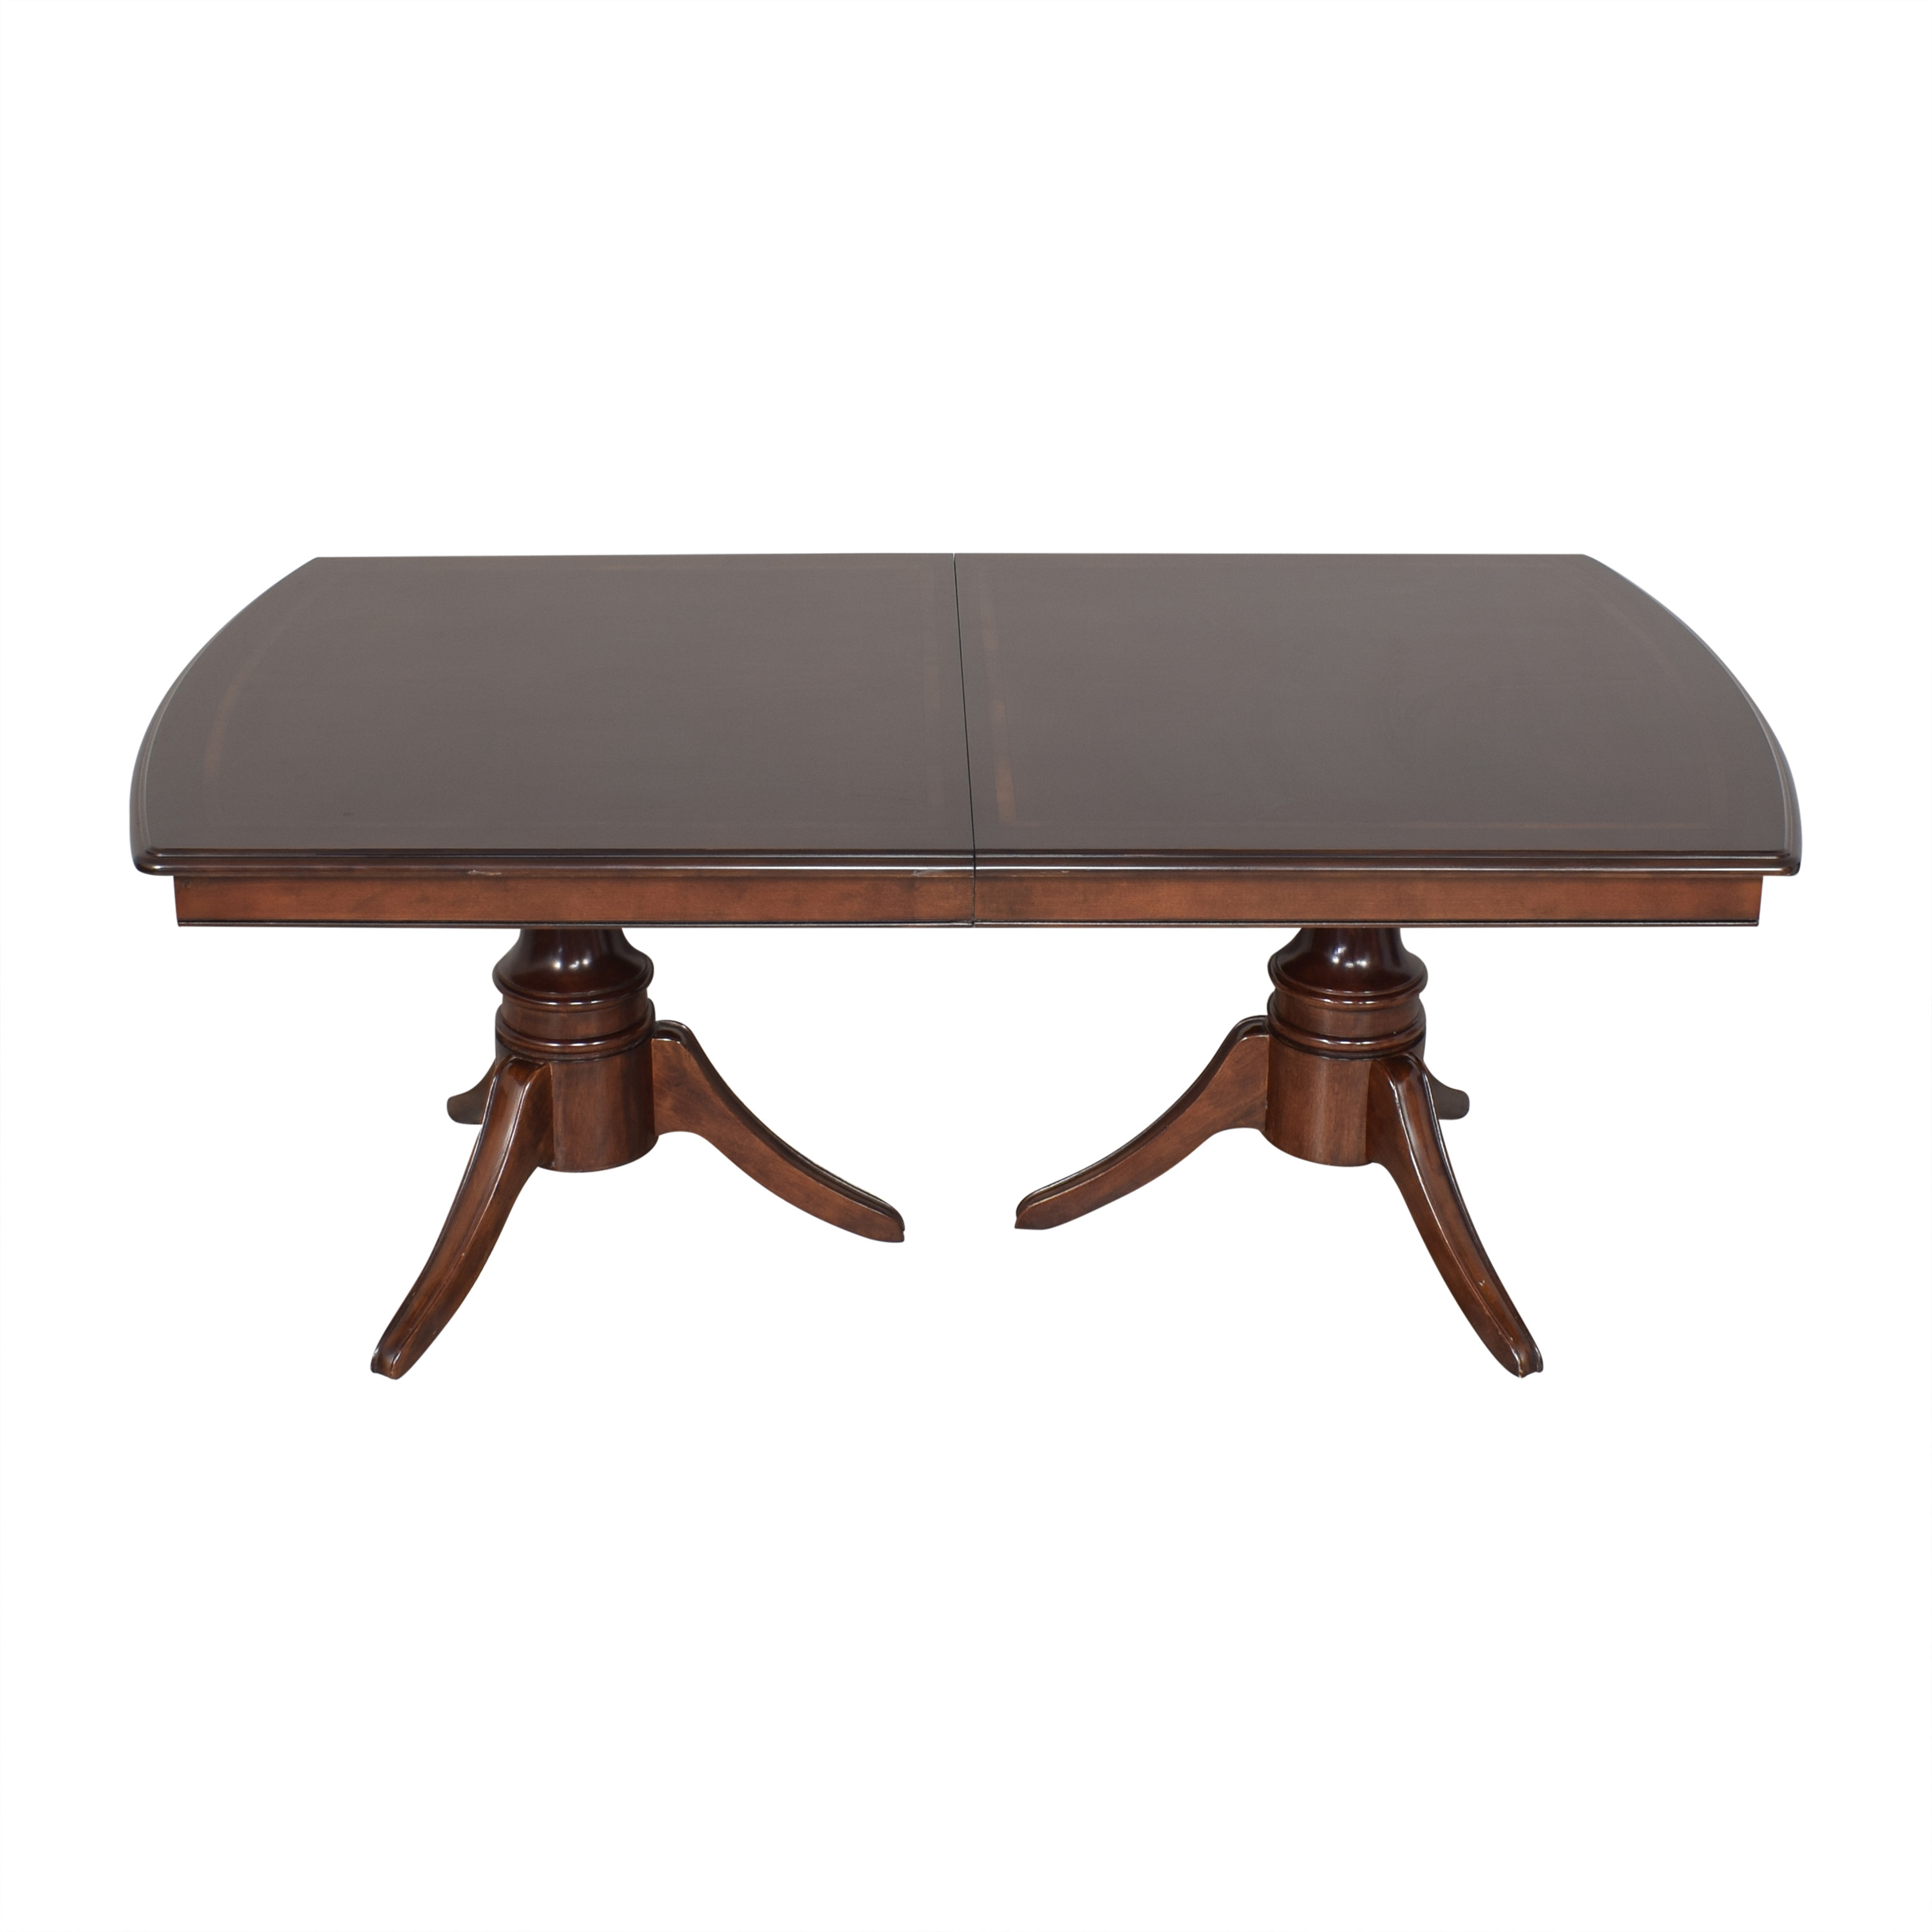 Raymour & Flanigan Raymour & Flanigan Extendable Dining Table